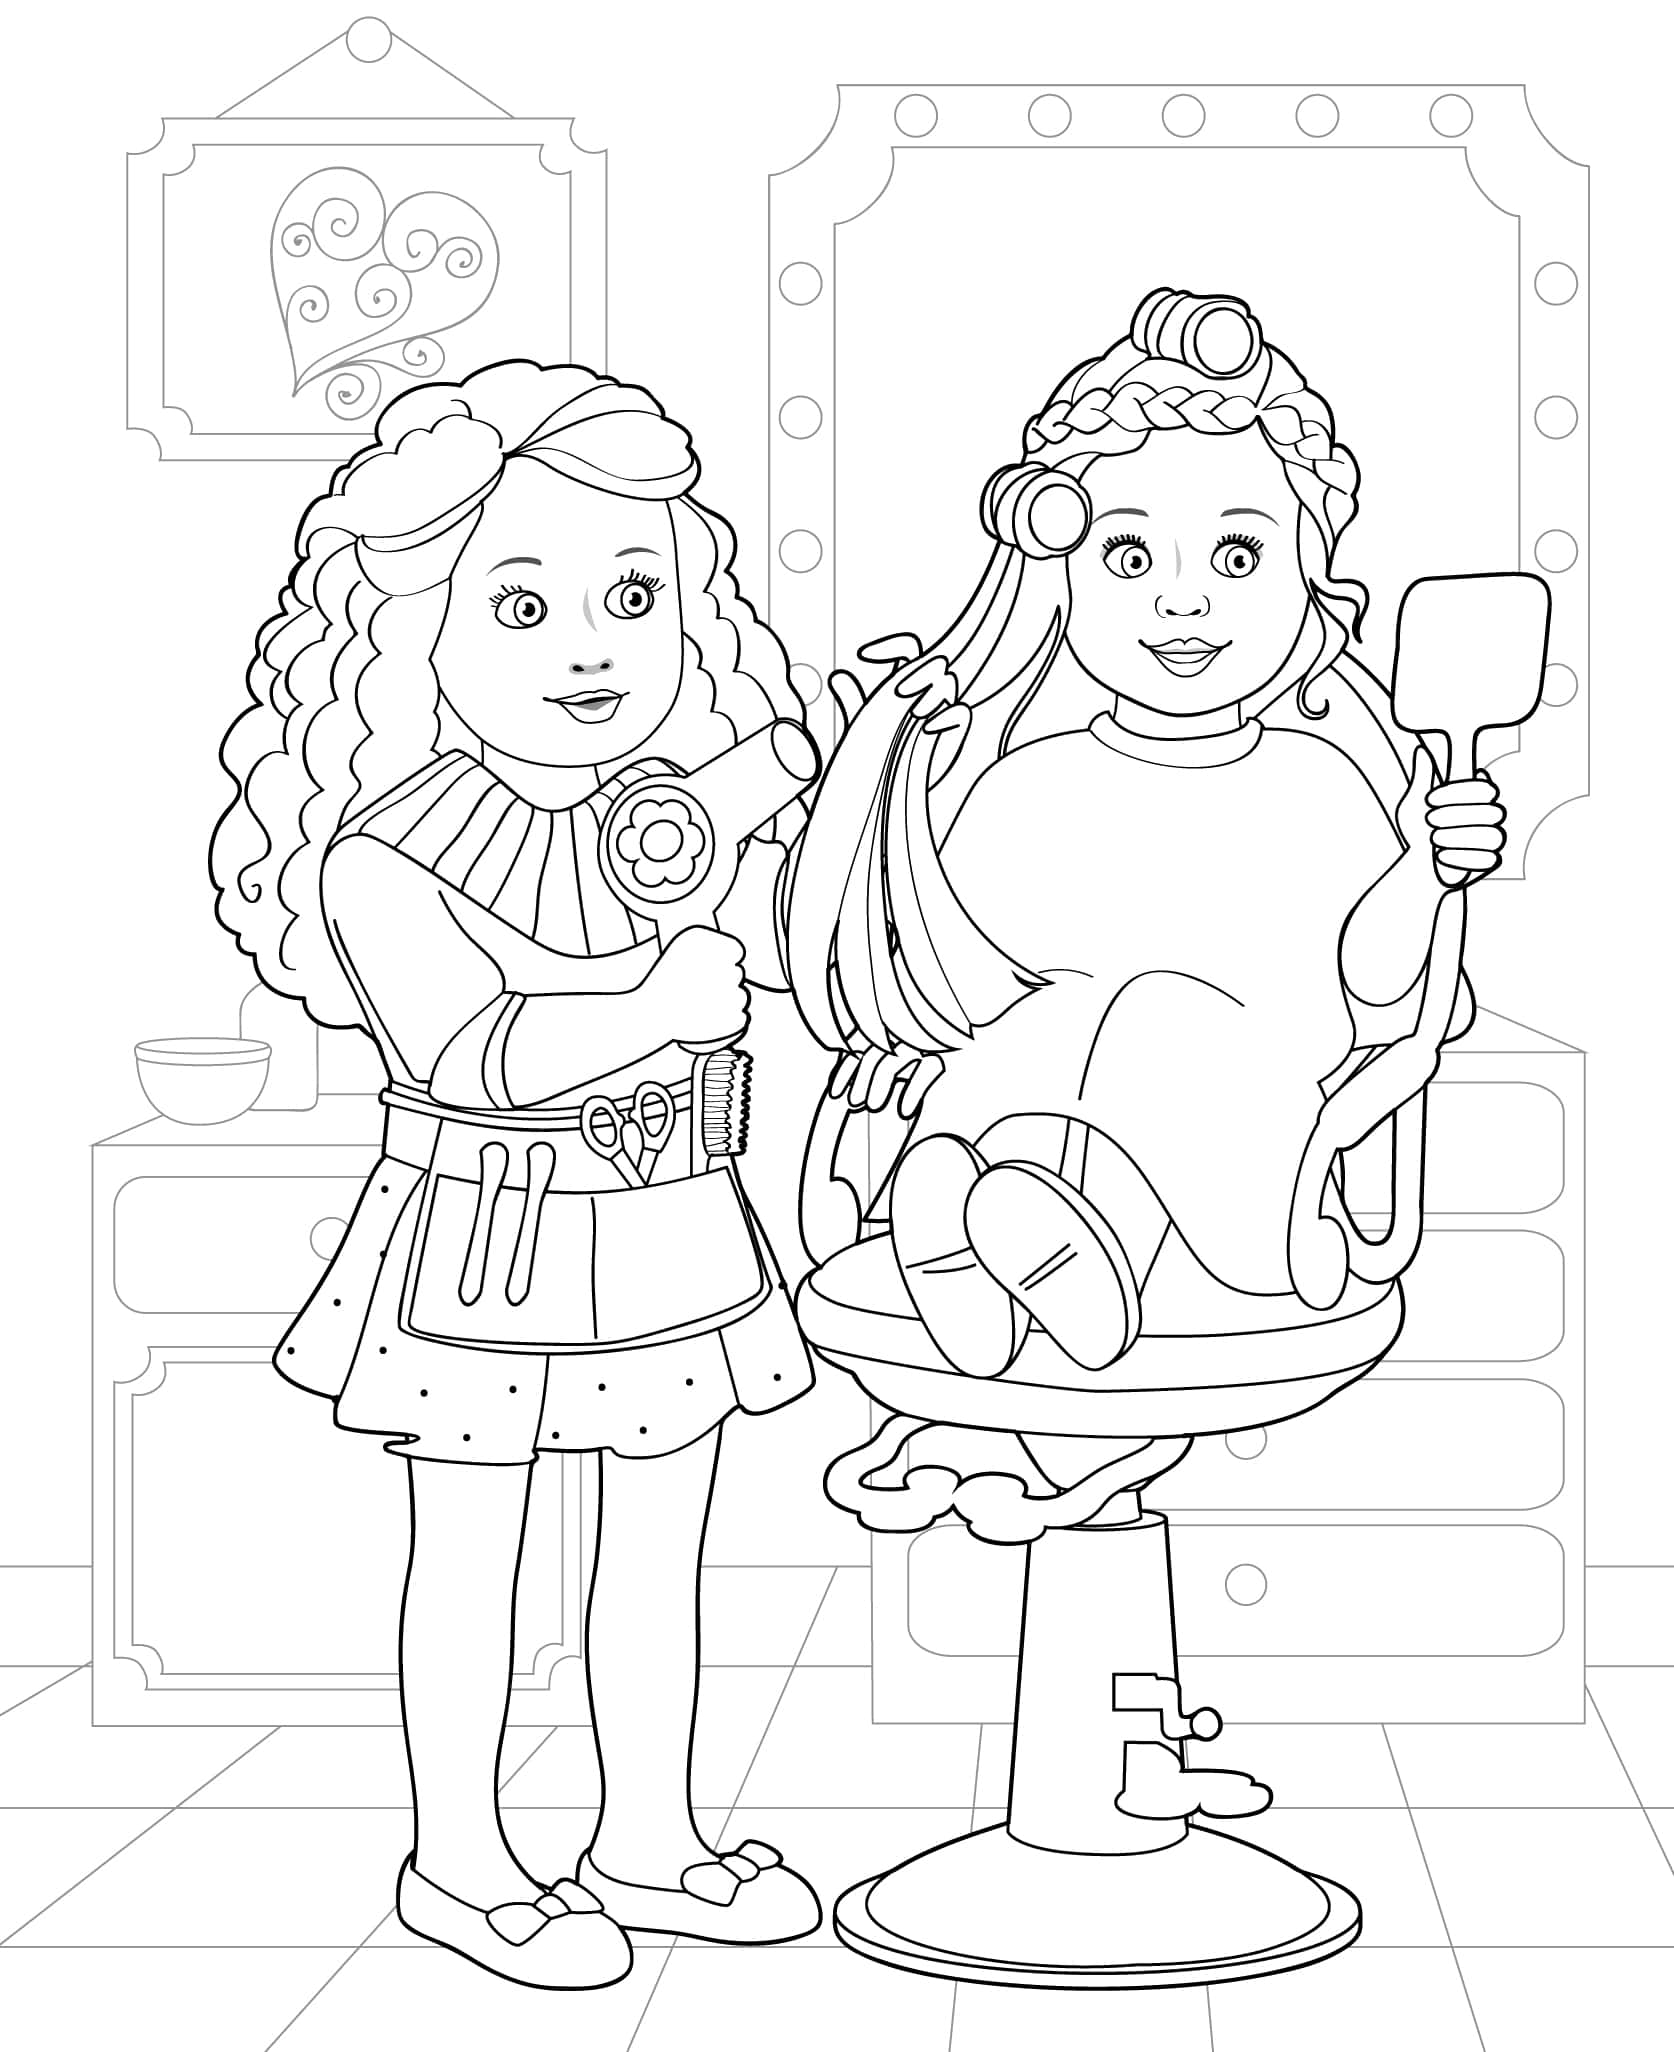 Hair salon coloring pages ~ My Life Doll Coloring Pages Coloring Pages